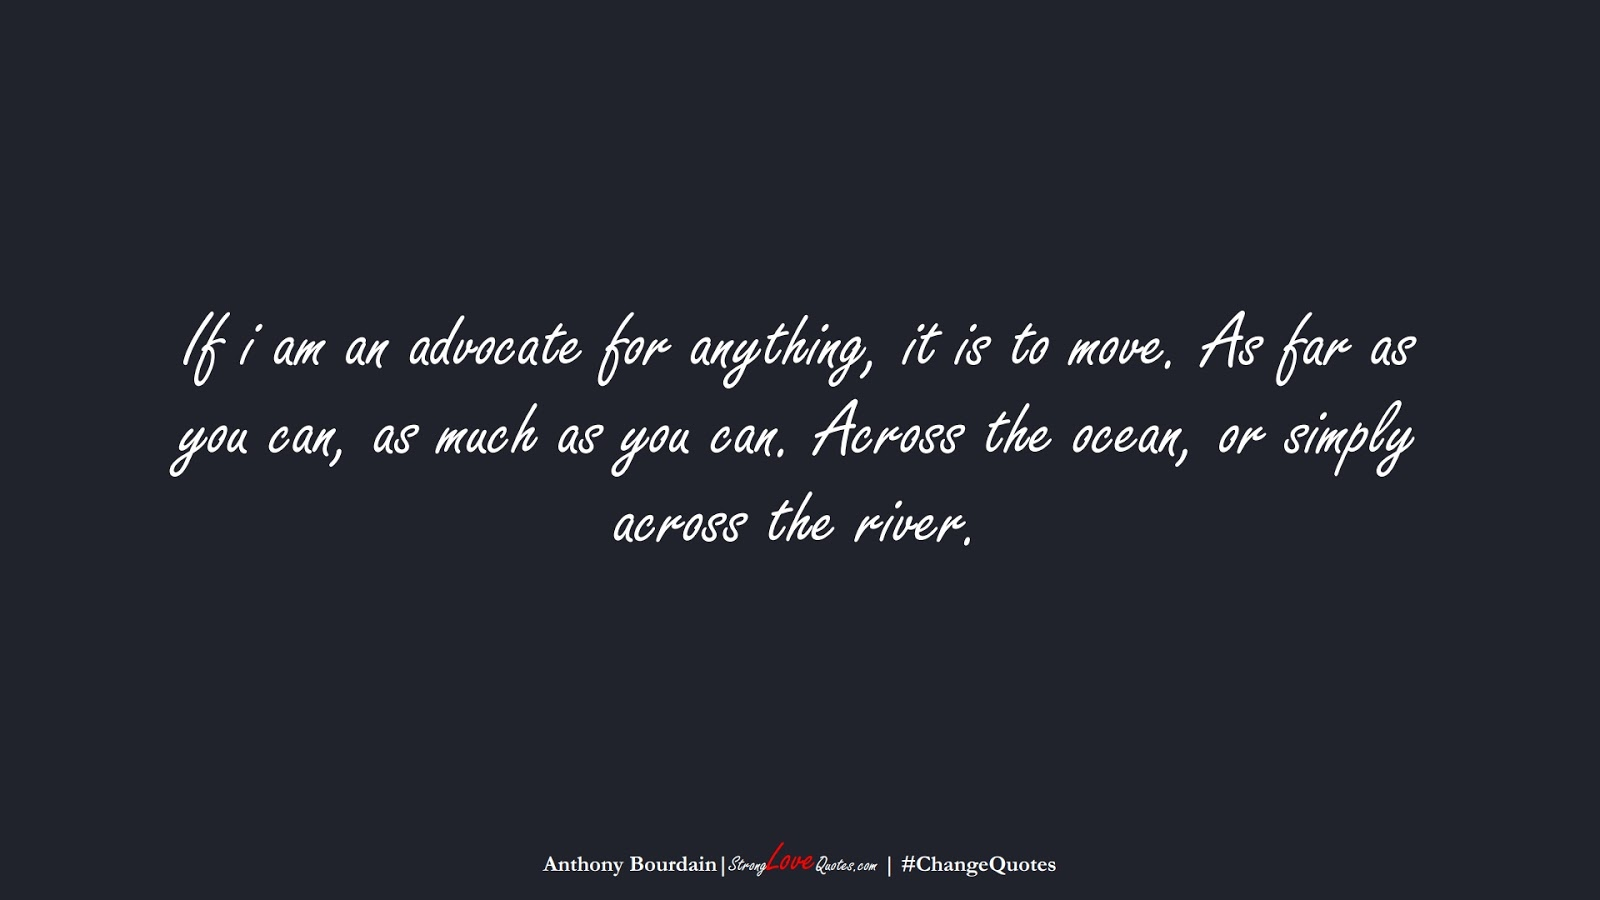 If i am an advocate for anything, it is to move. As far as you can, as much as you can. Across the ocean, or simply across the river. (Anthony Bourdain);  #ChangeQuotes